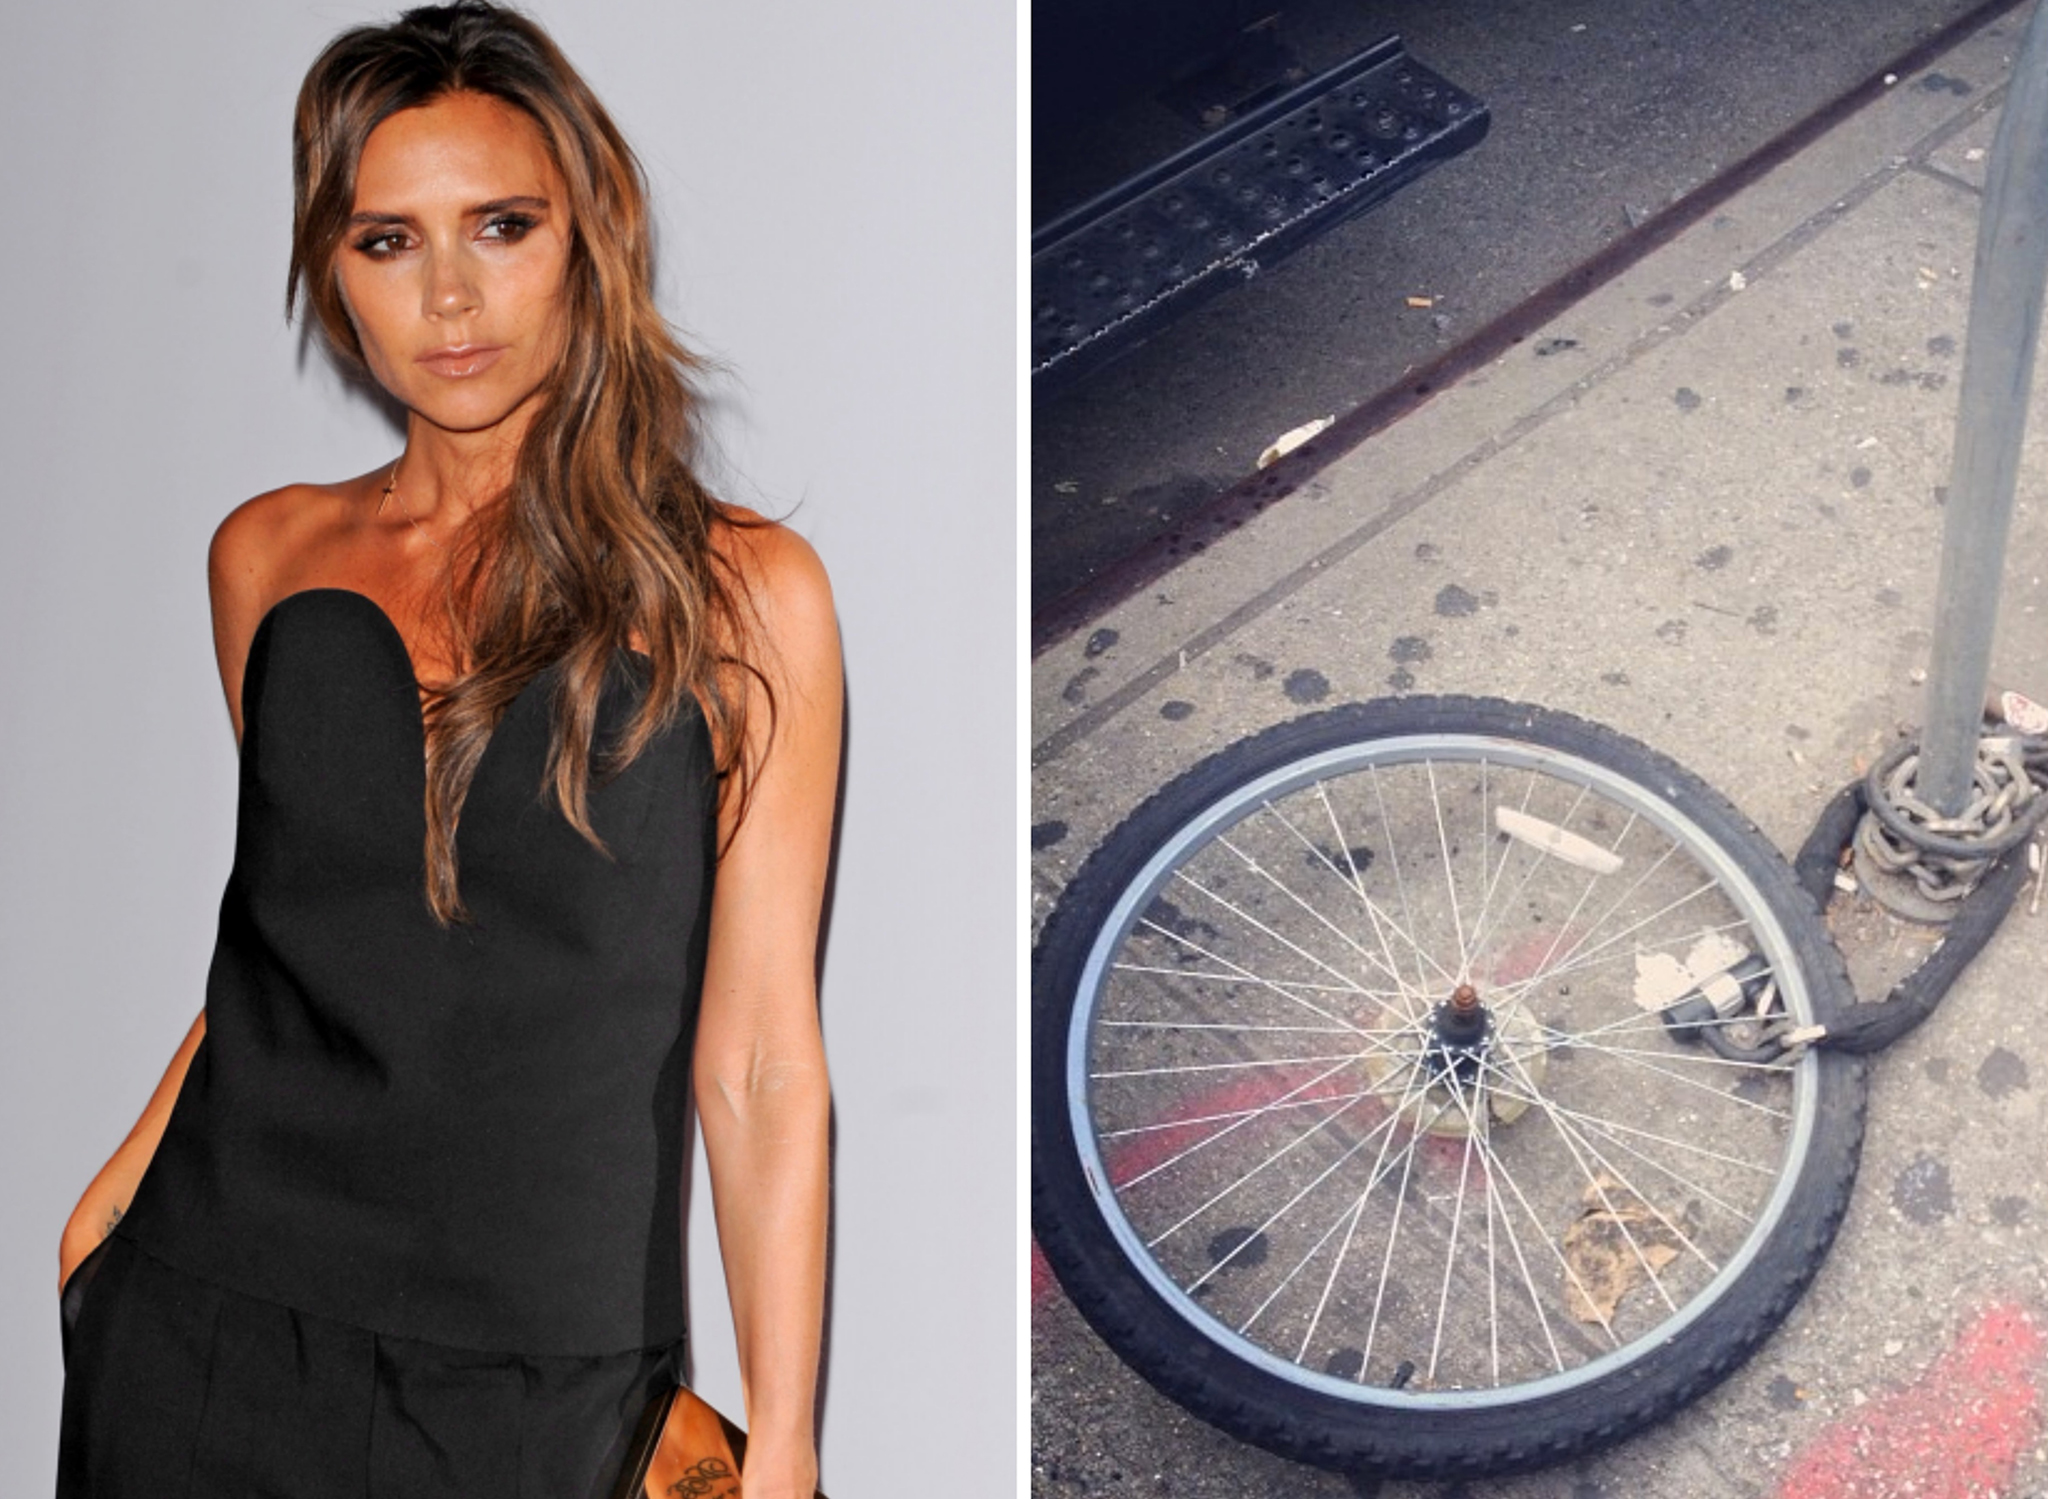 Victoria Beckham and her lonely bike wheel (Getty Images / Instagram)